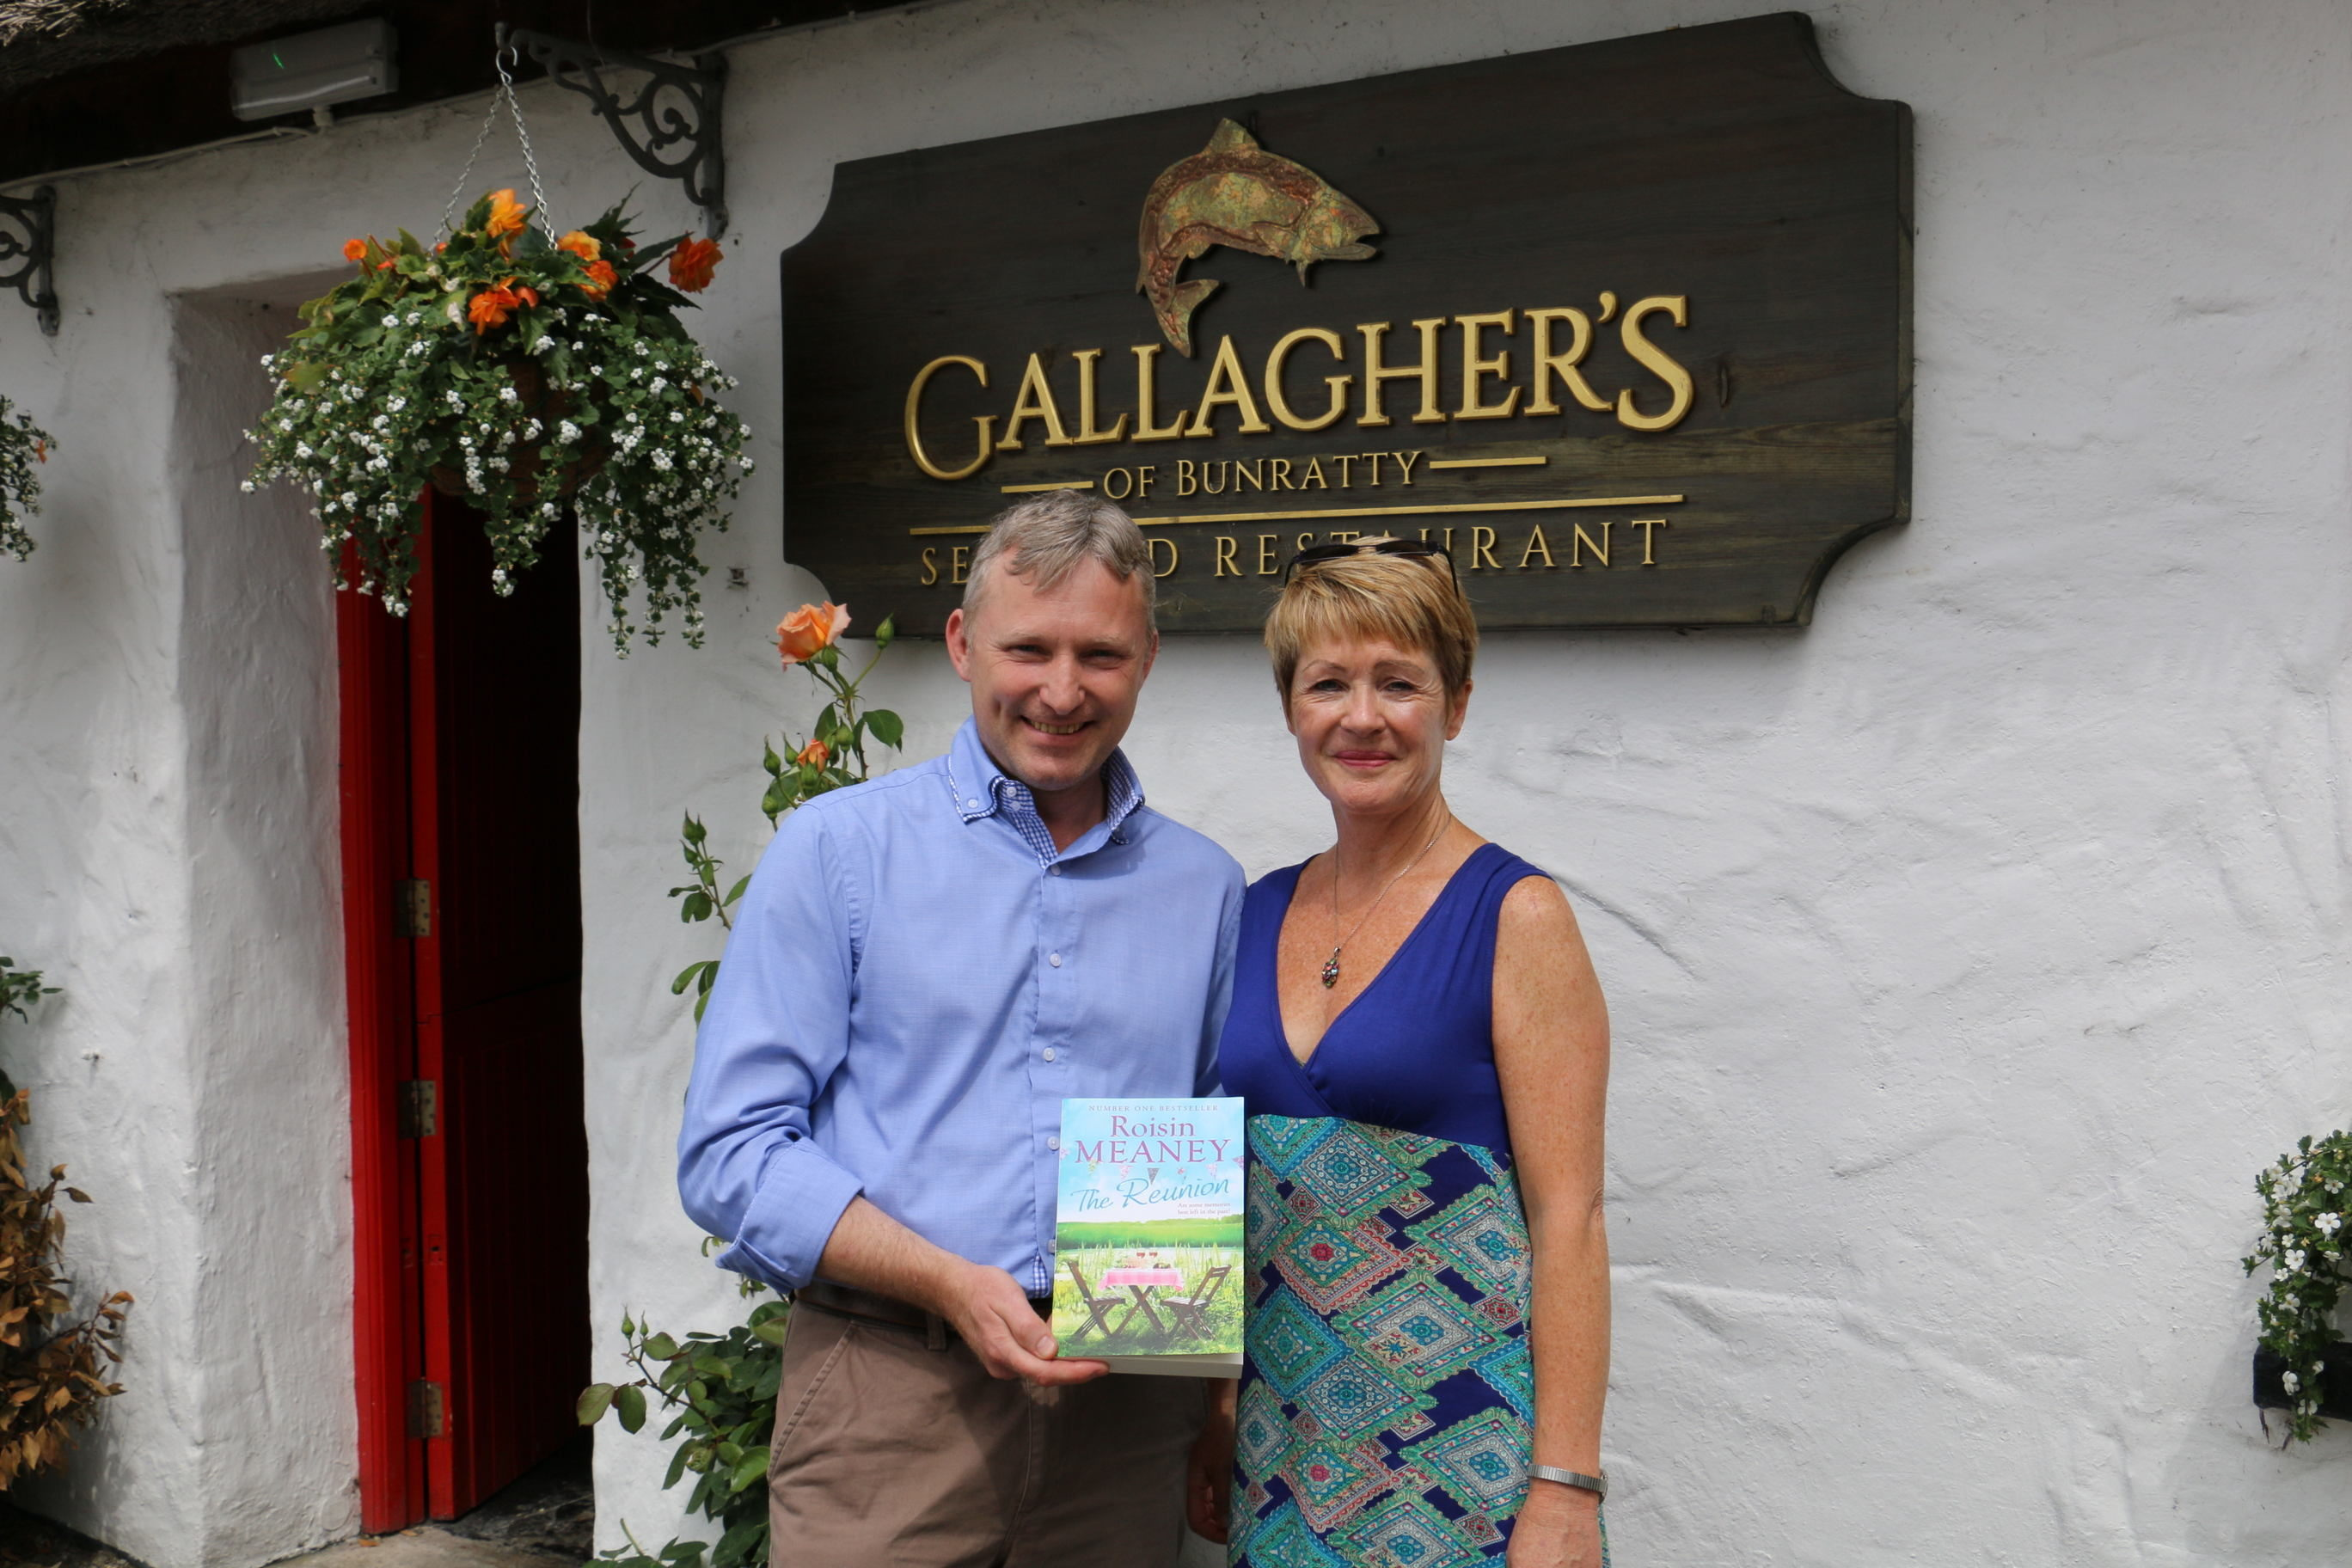 Gallaghers Seafood Restaurant Bunratty